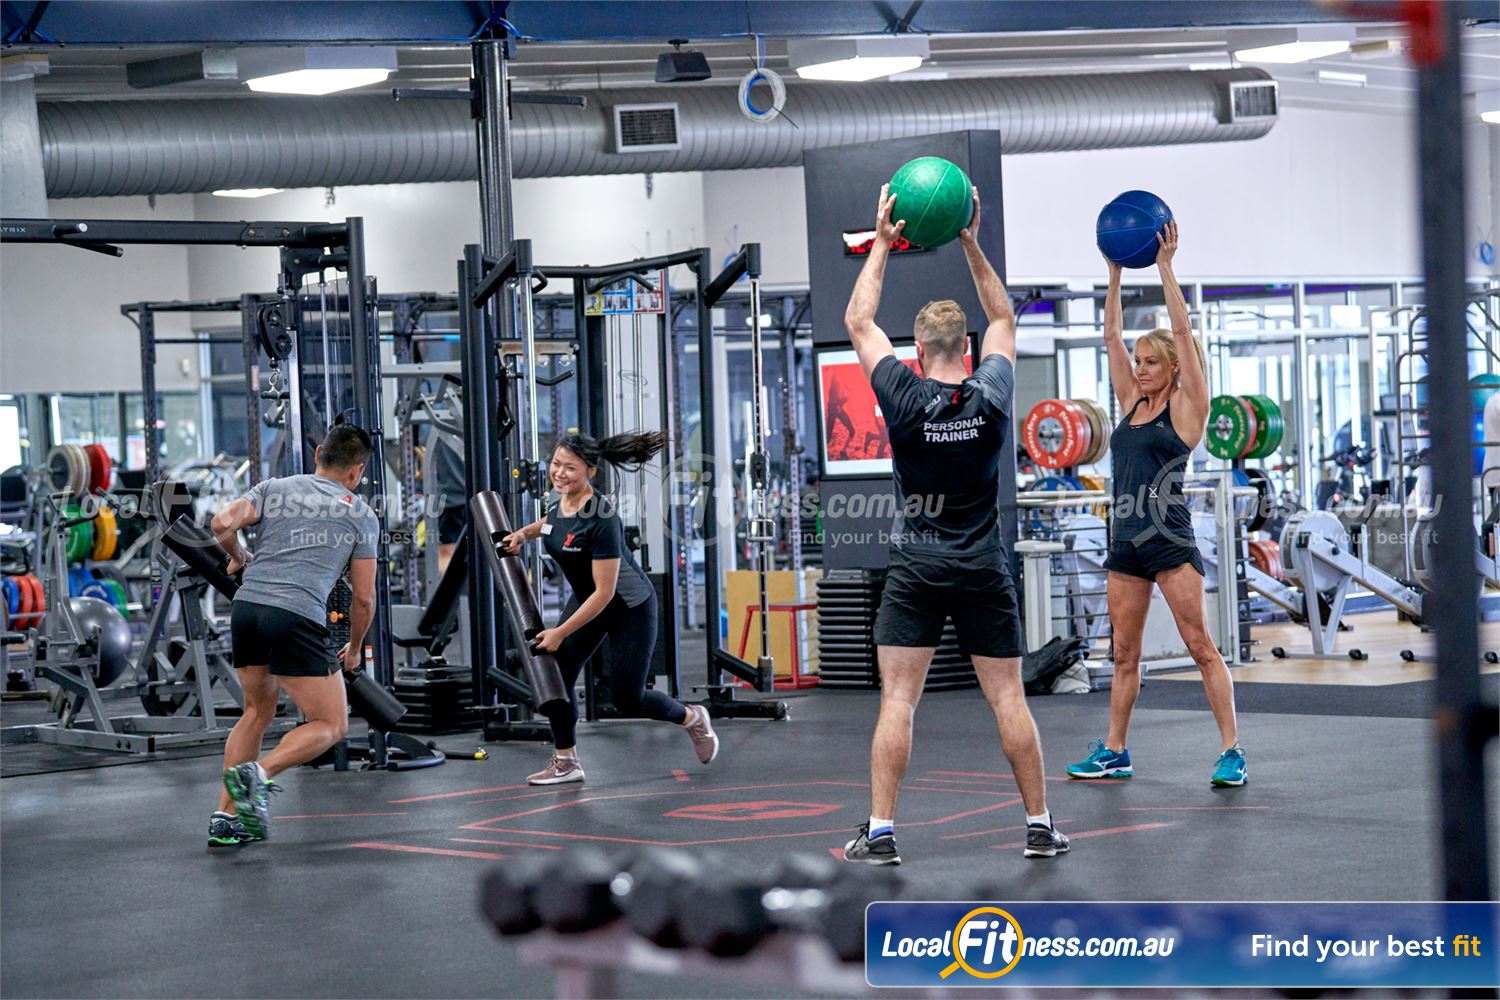 Fitness First Near Monterey Join our High-performance team Rockdale personal training class.